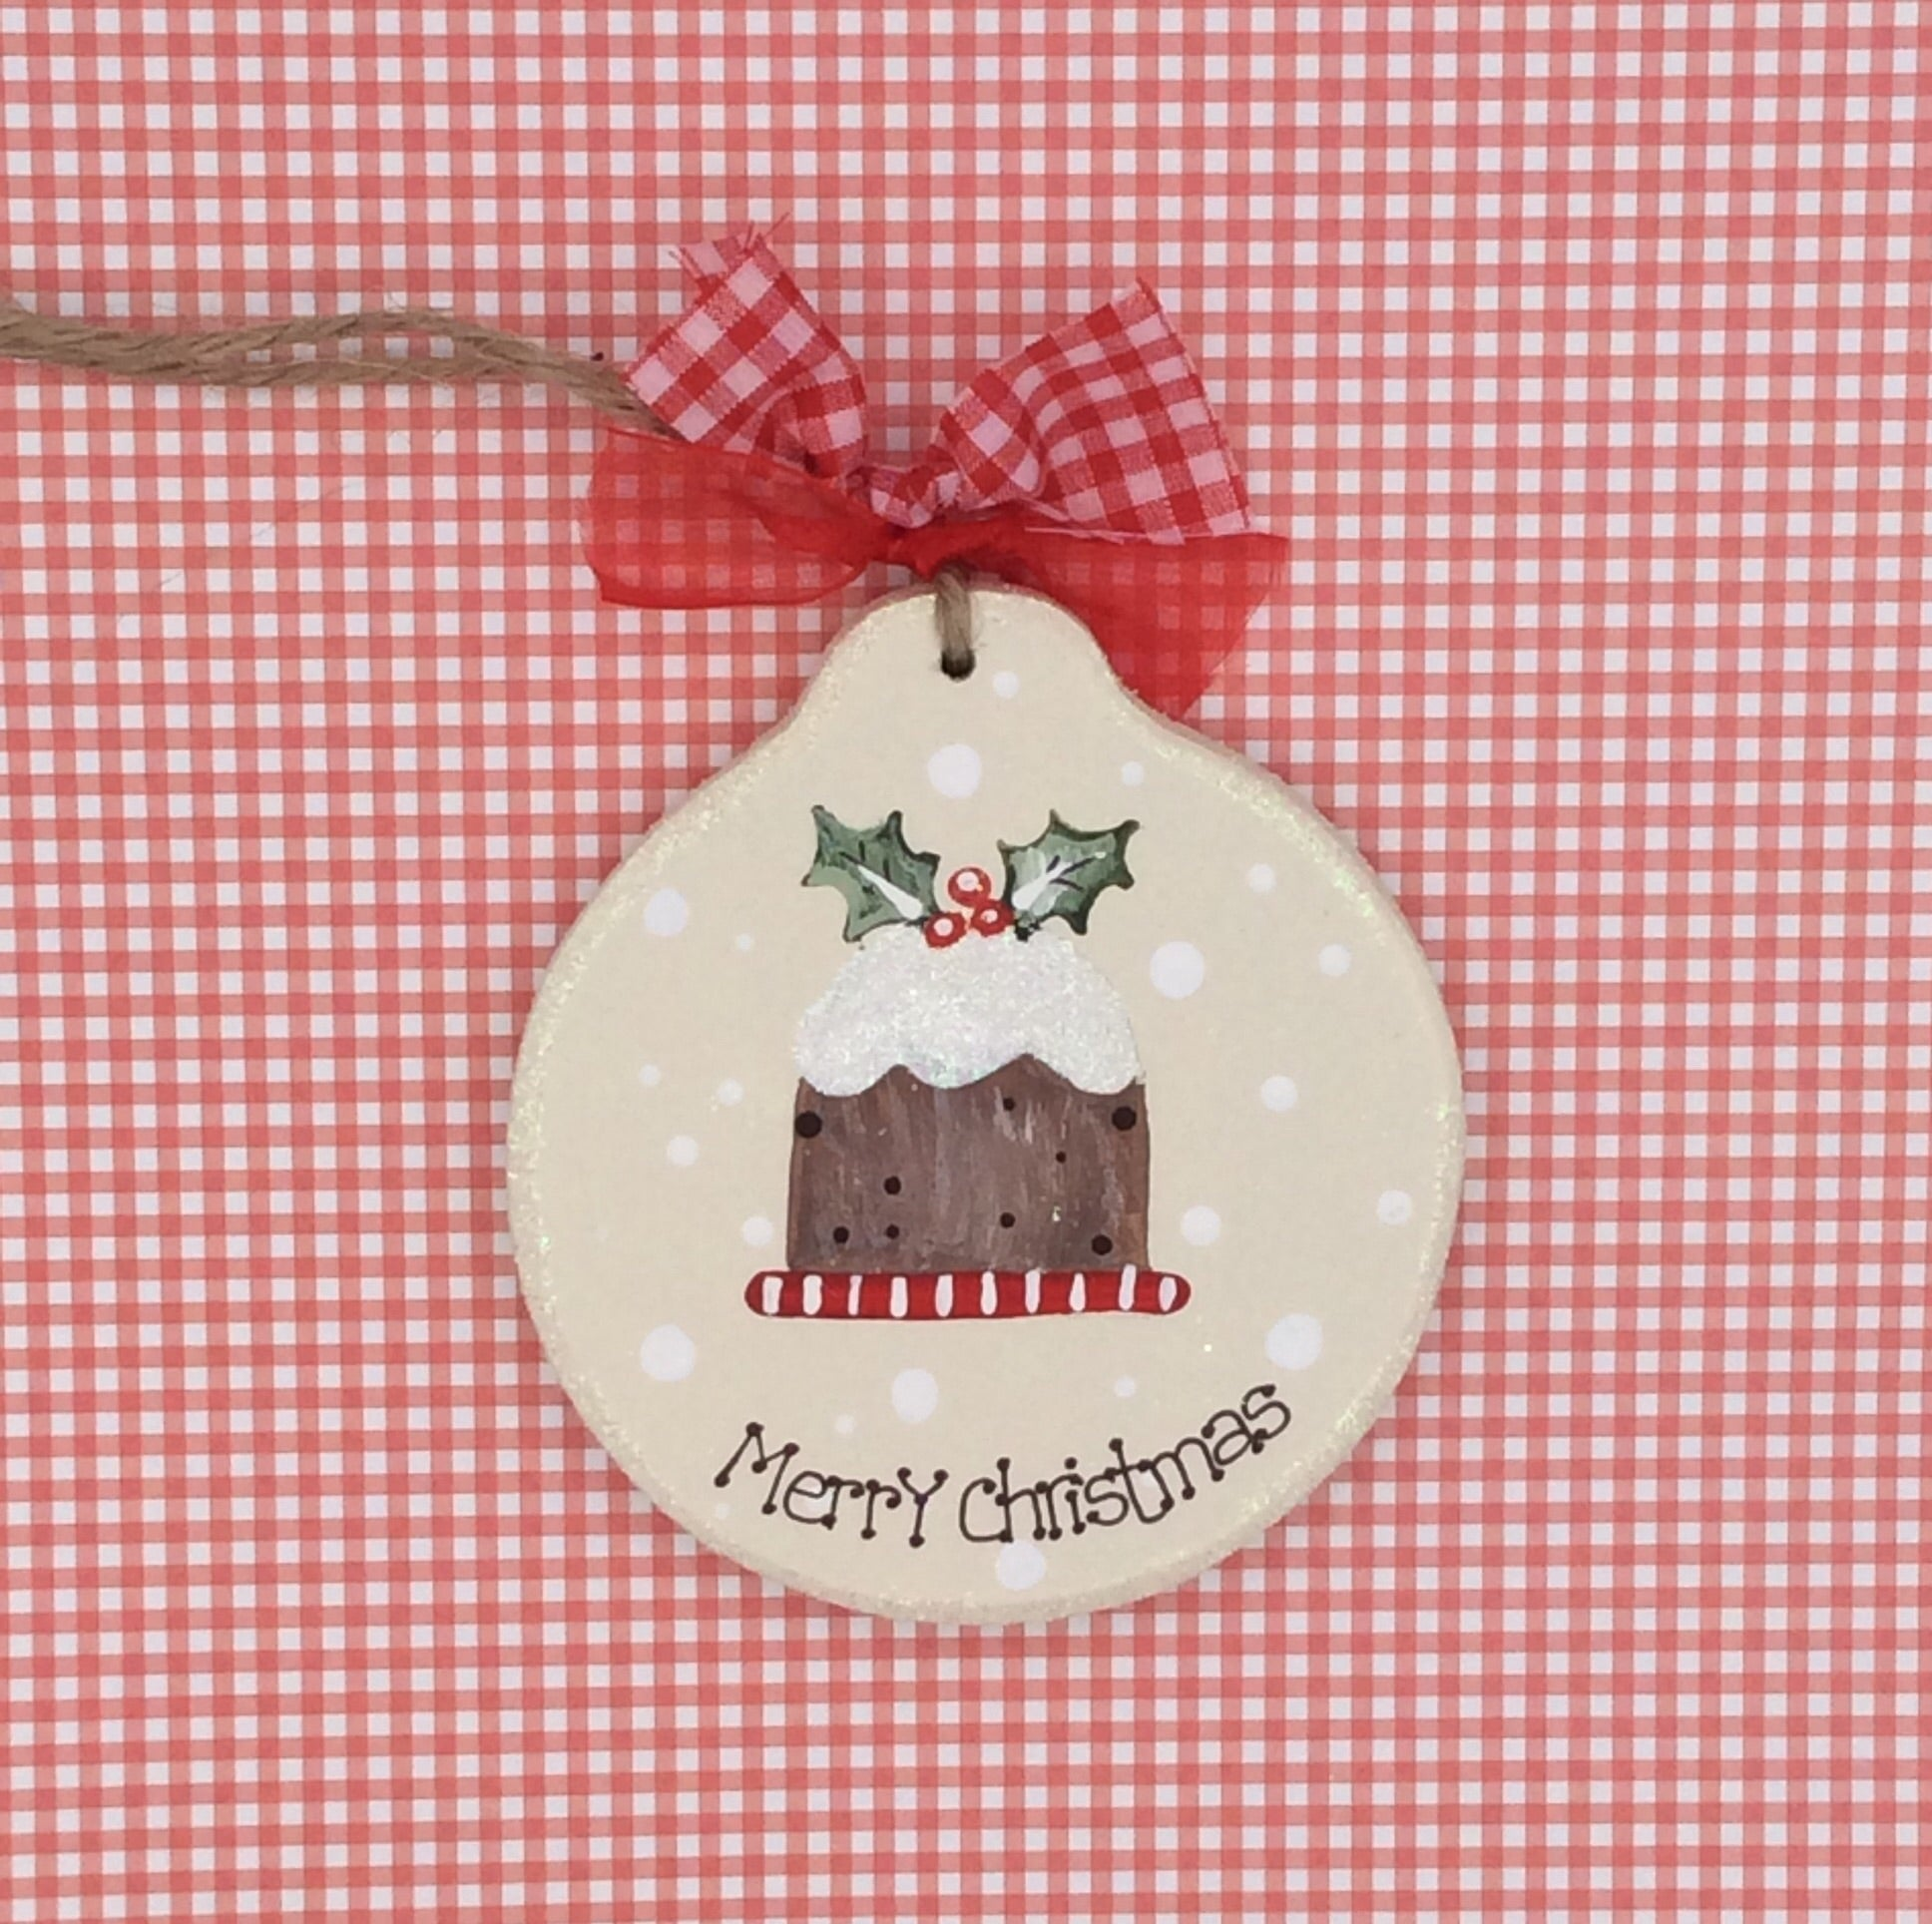 Personalised Christmas tree decoration with Christmas pudding design.